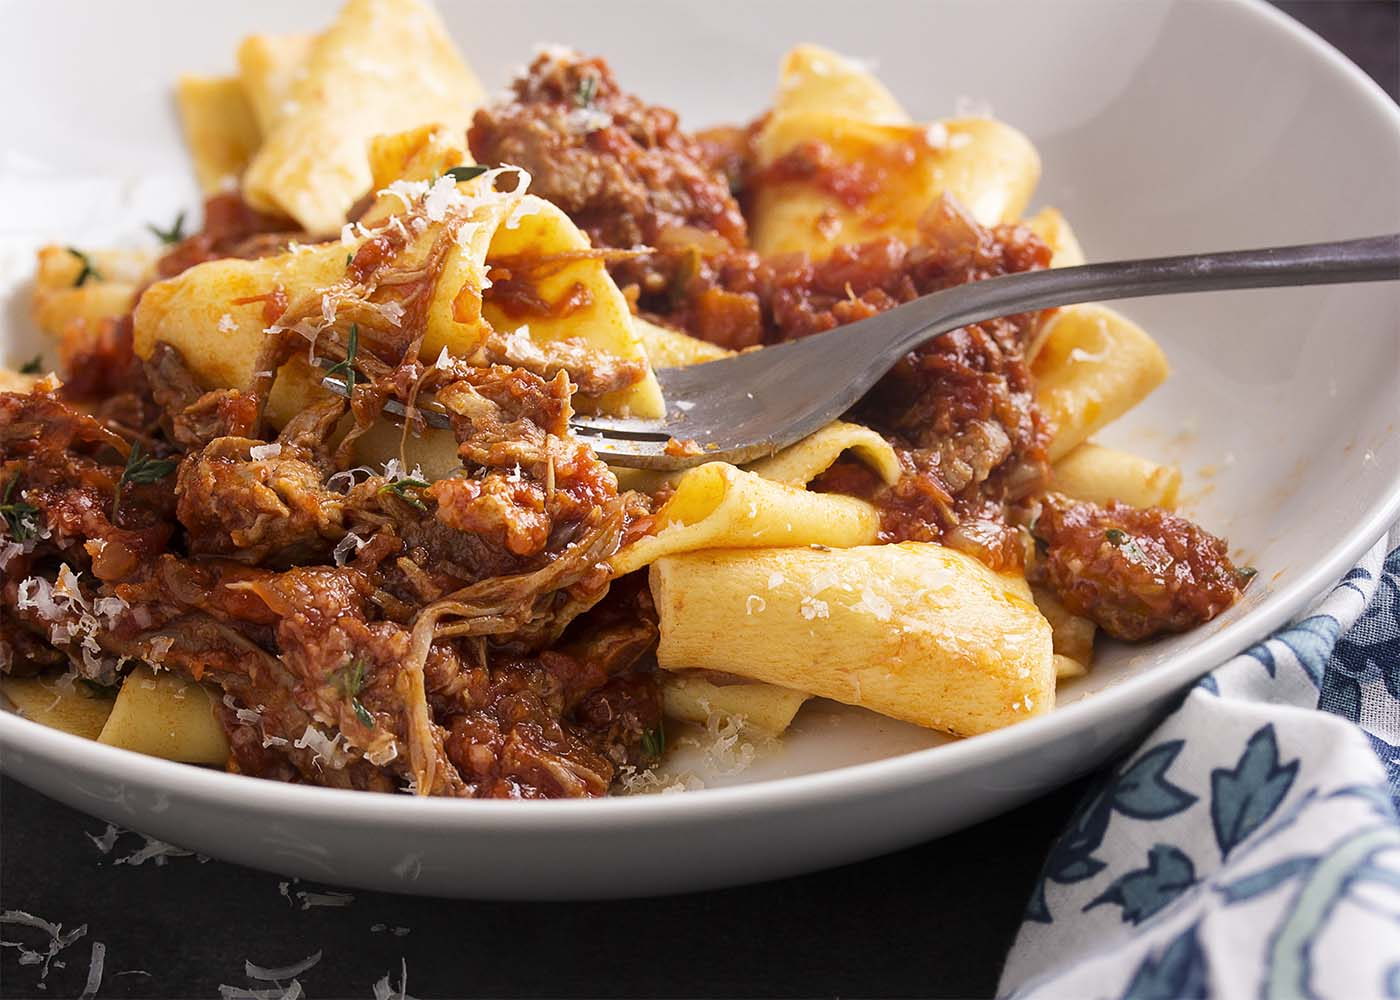 A fork digging into a bowl of pappardelle tossed with pork ragu.